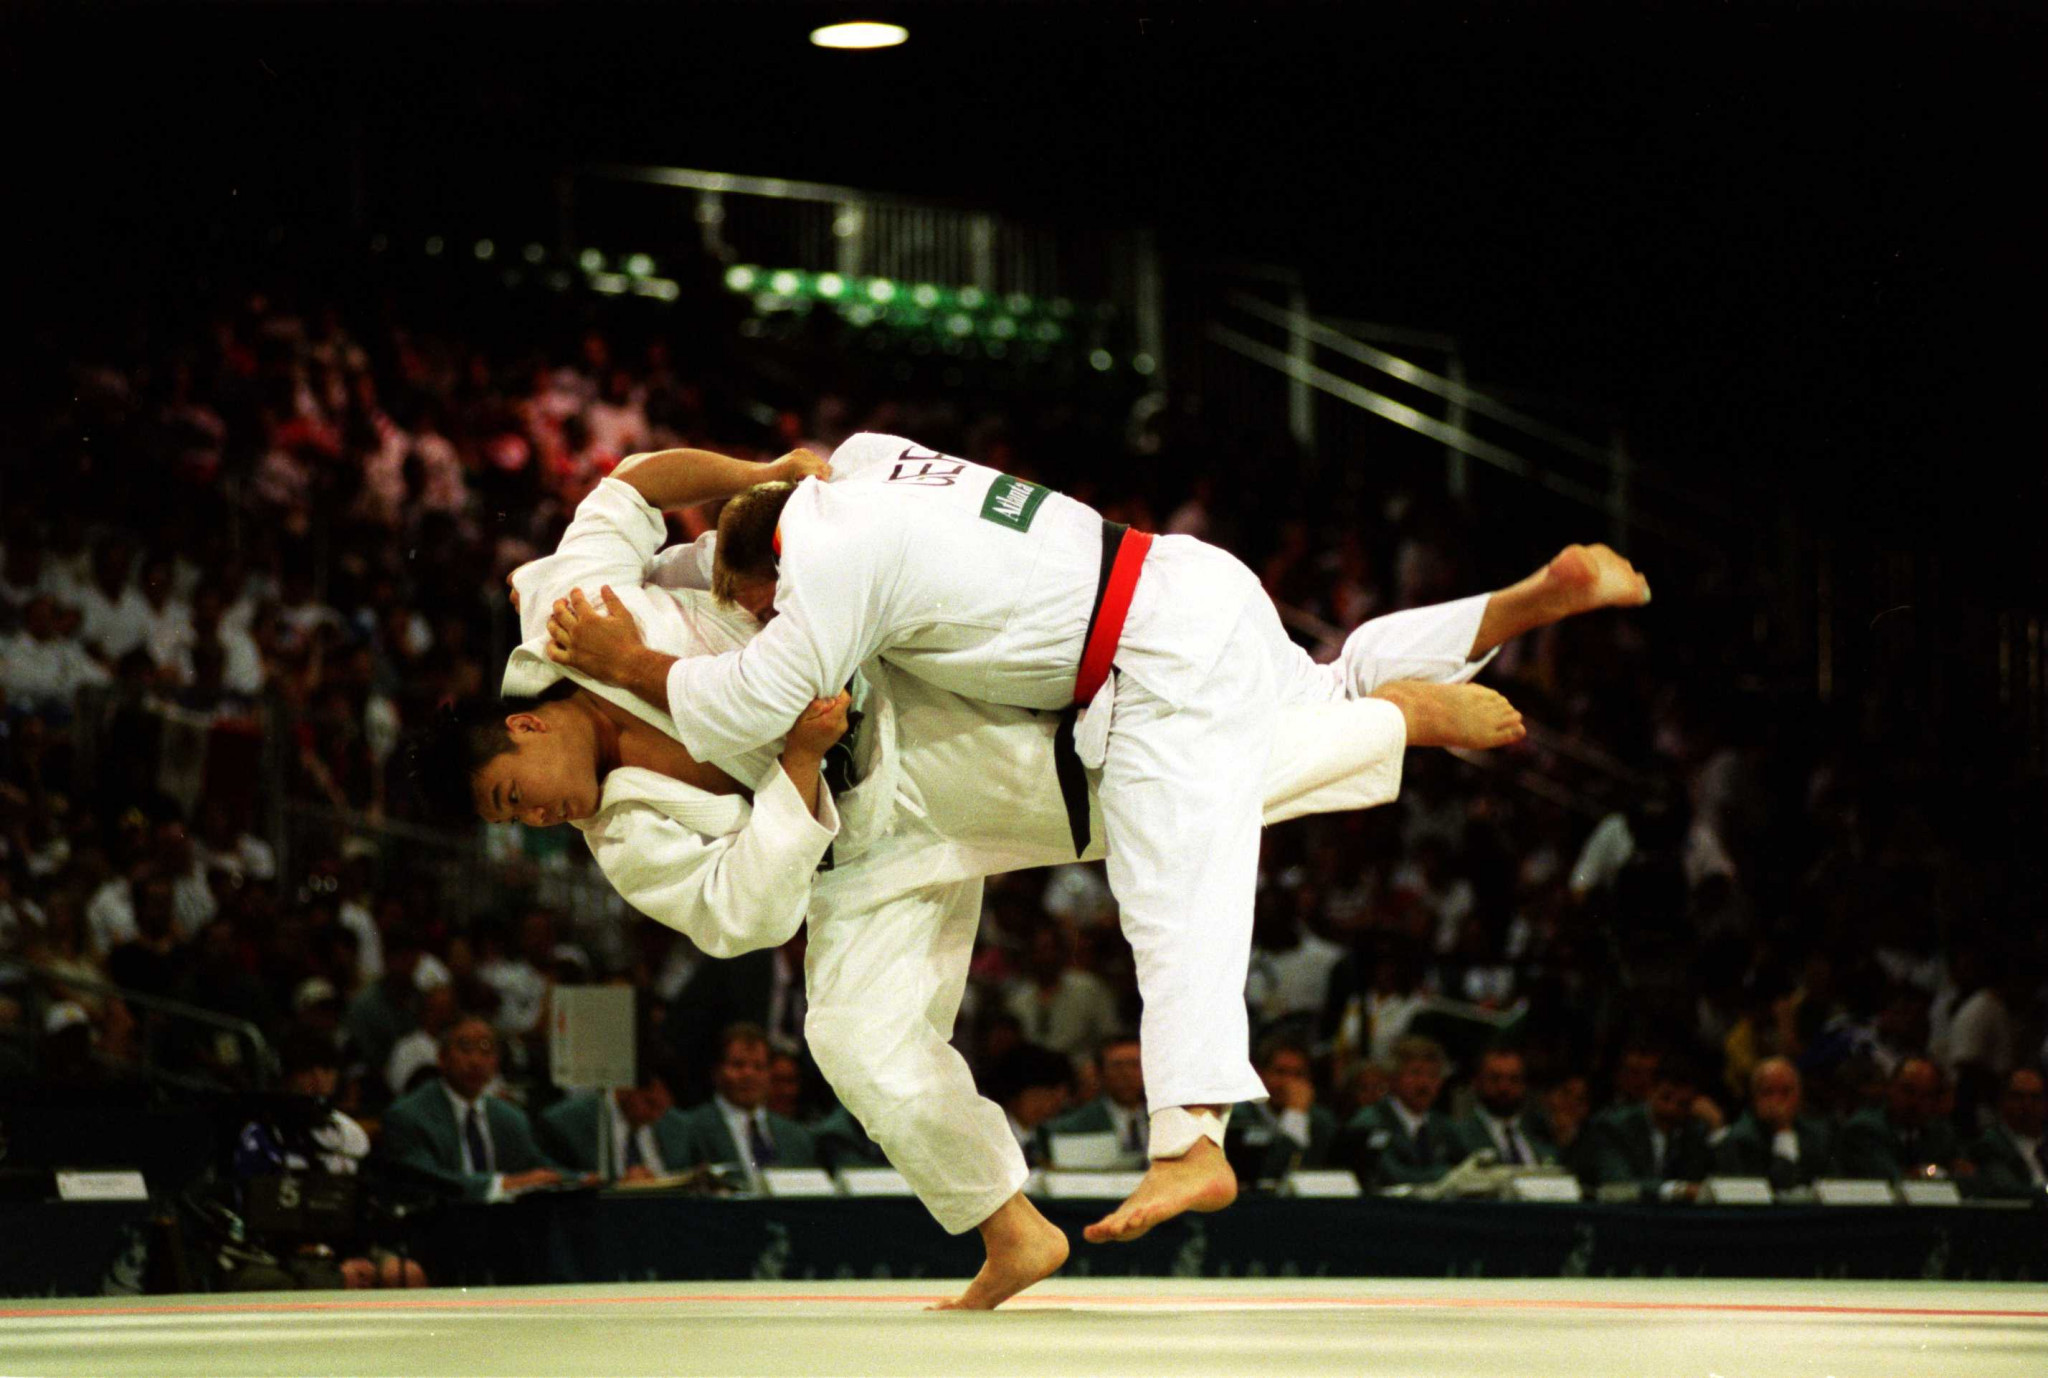 Olympic Games in Atlanta, Georgia. World Congress Centre. Heavyweight Judo. David Douillet (Fra) 1st. Eernesto Perezi (Esp) 2nd ©Getty Images